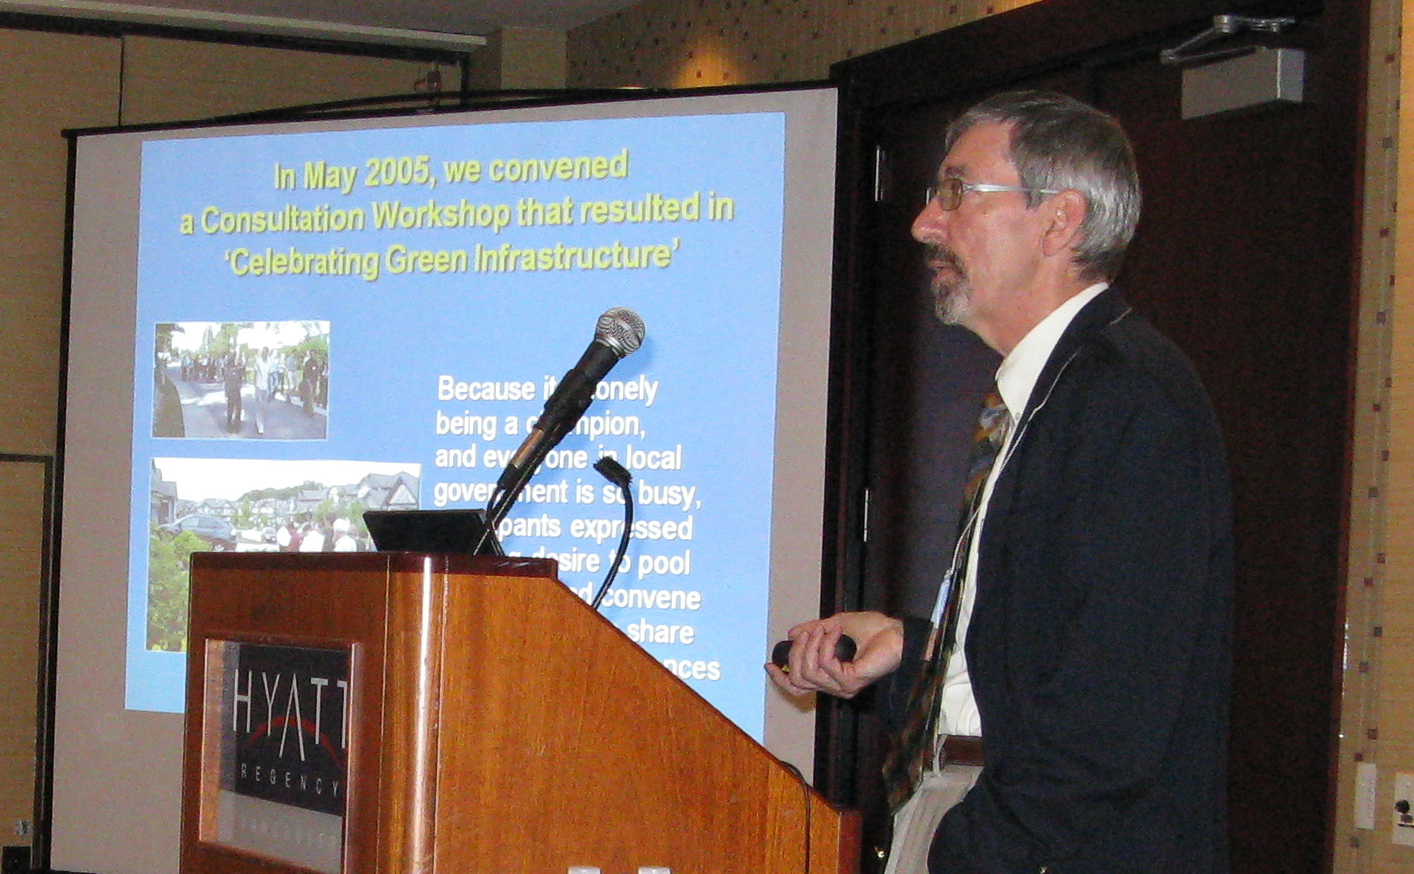 """At the rollout of """"Beyond the Guidebook"""" in November 2007, Paul Ham explained the strategic importance of the Showcasing Green Infrastructure Innovation Series as a catalyst for implementing changes in practice that reflect a 'design with nature' philosophy."""